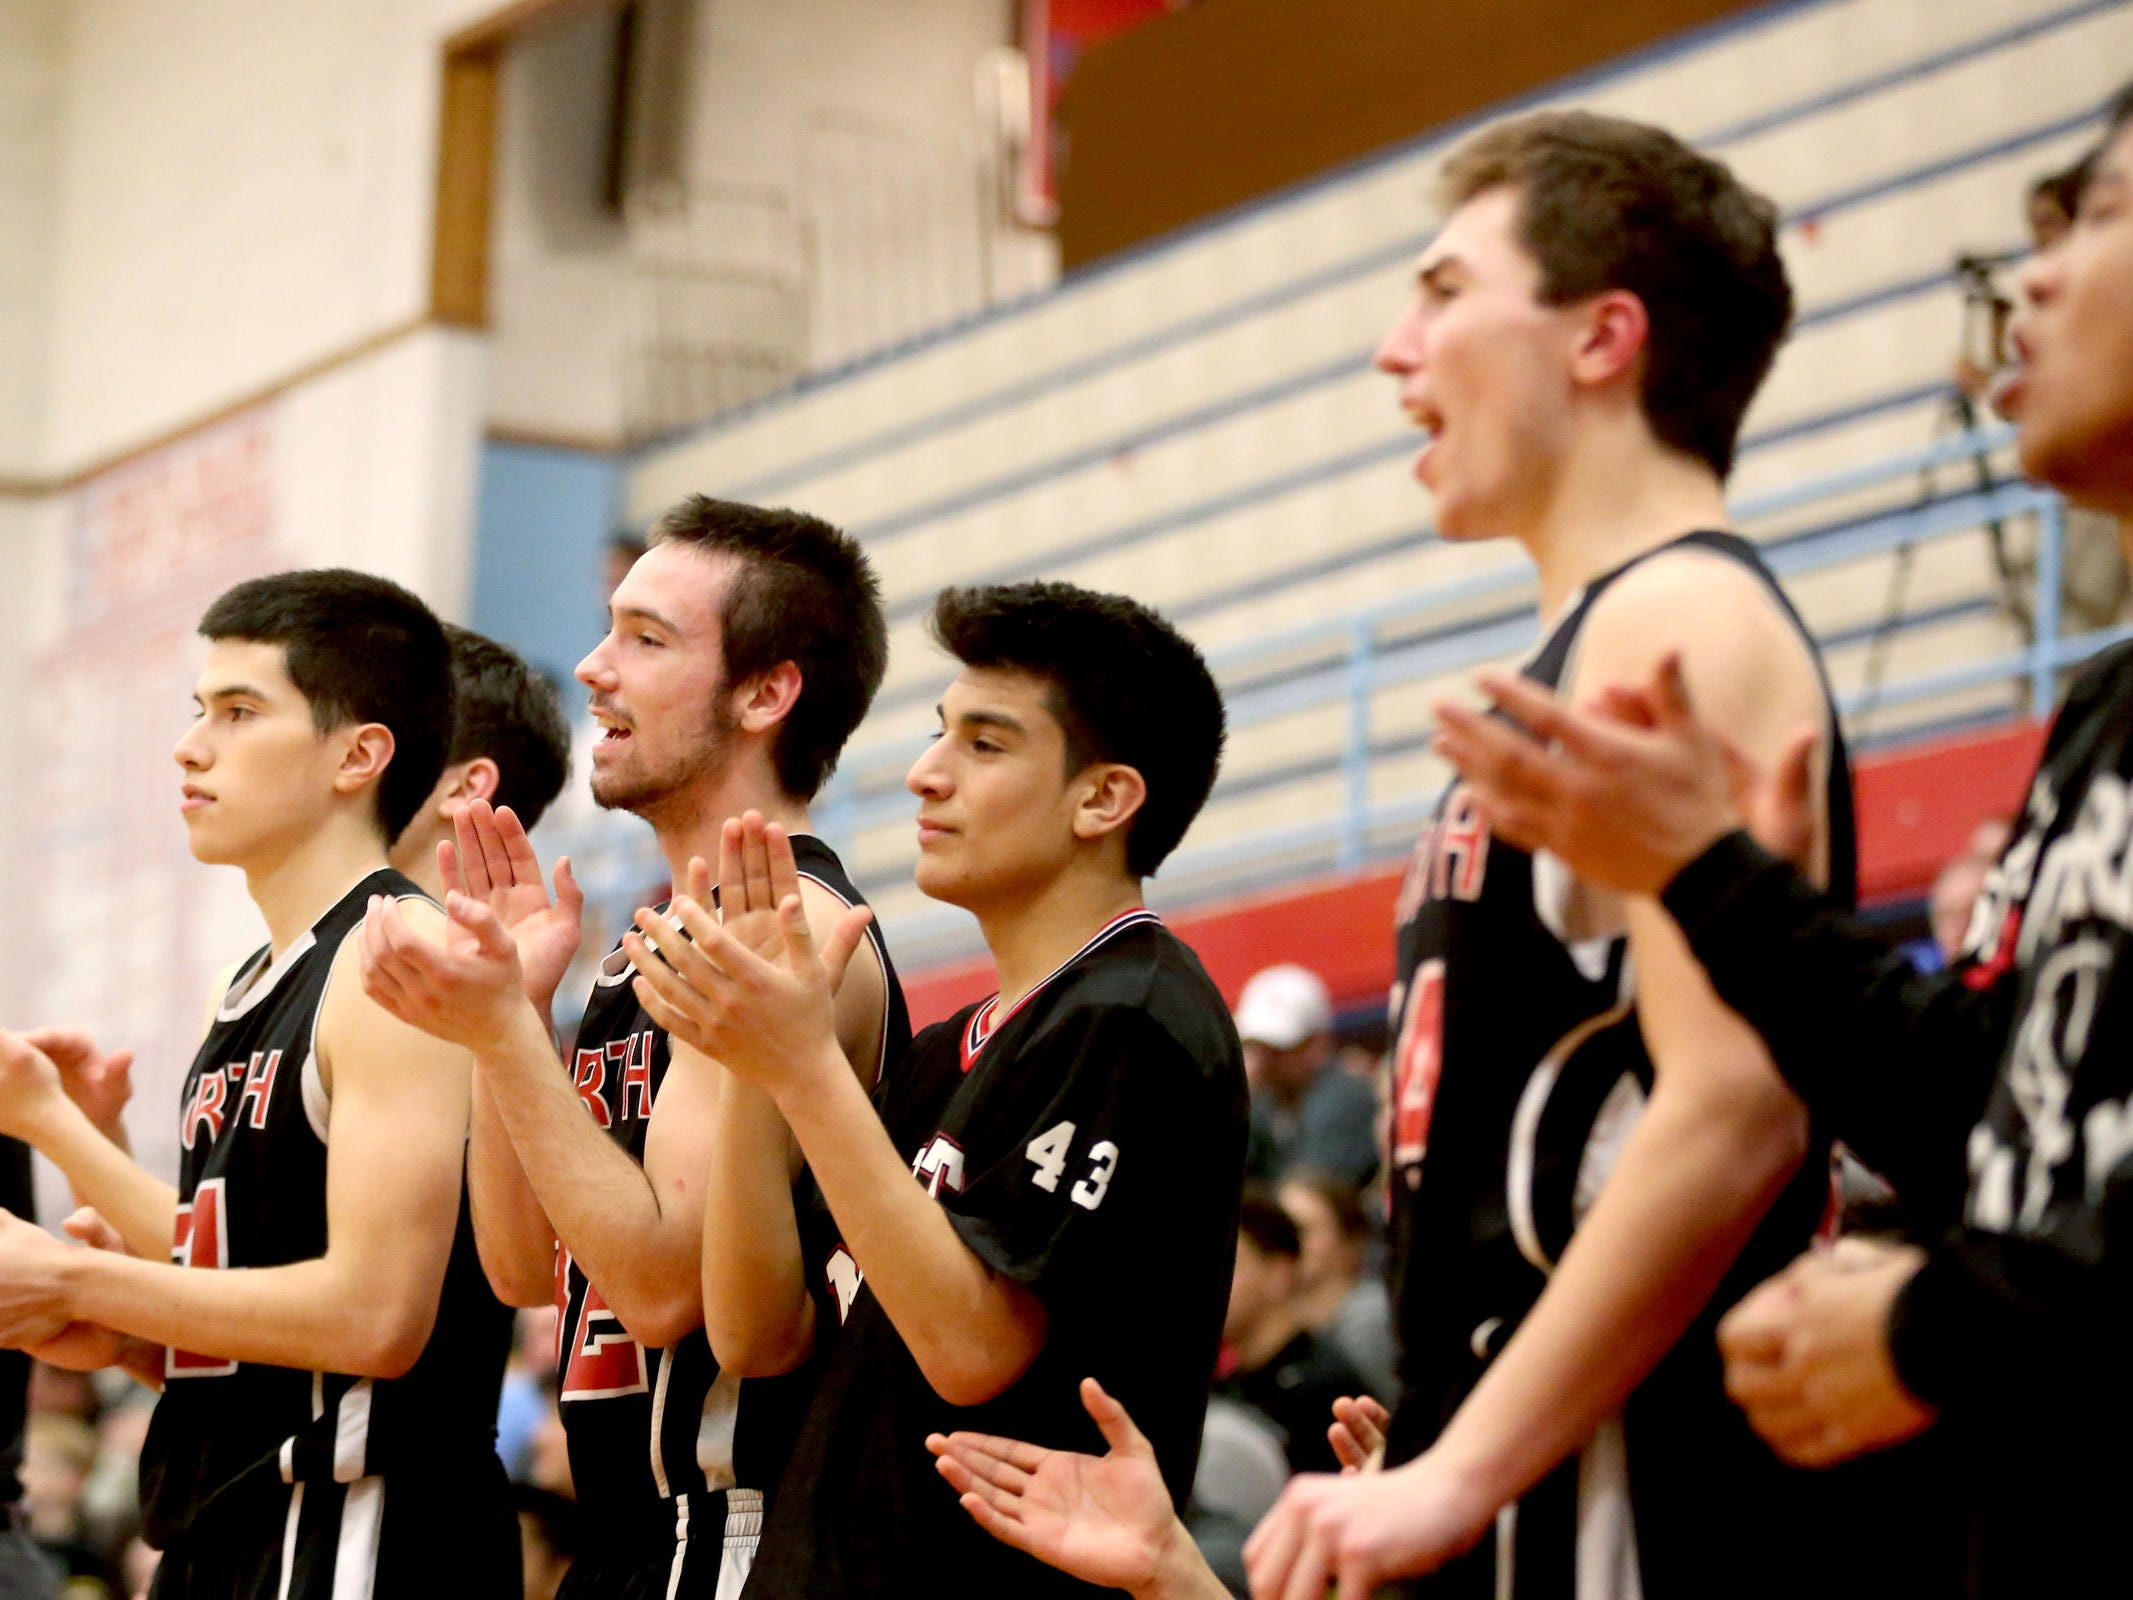 The North Salem bench celebrates a play in the first half.